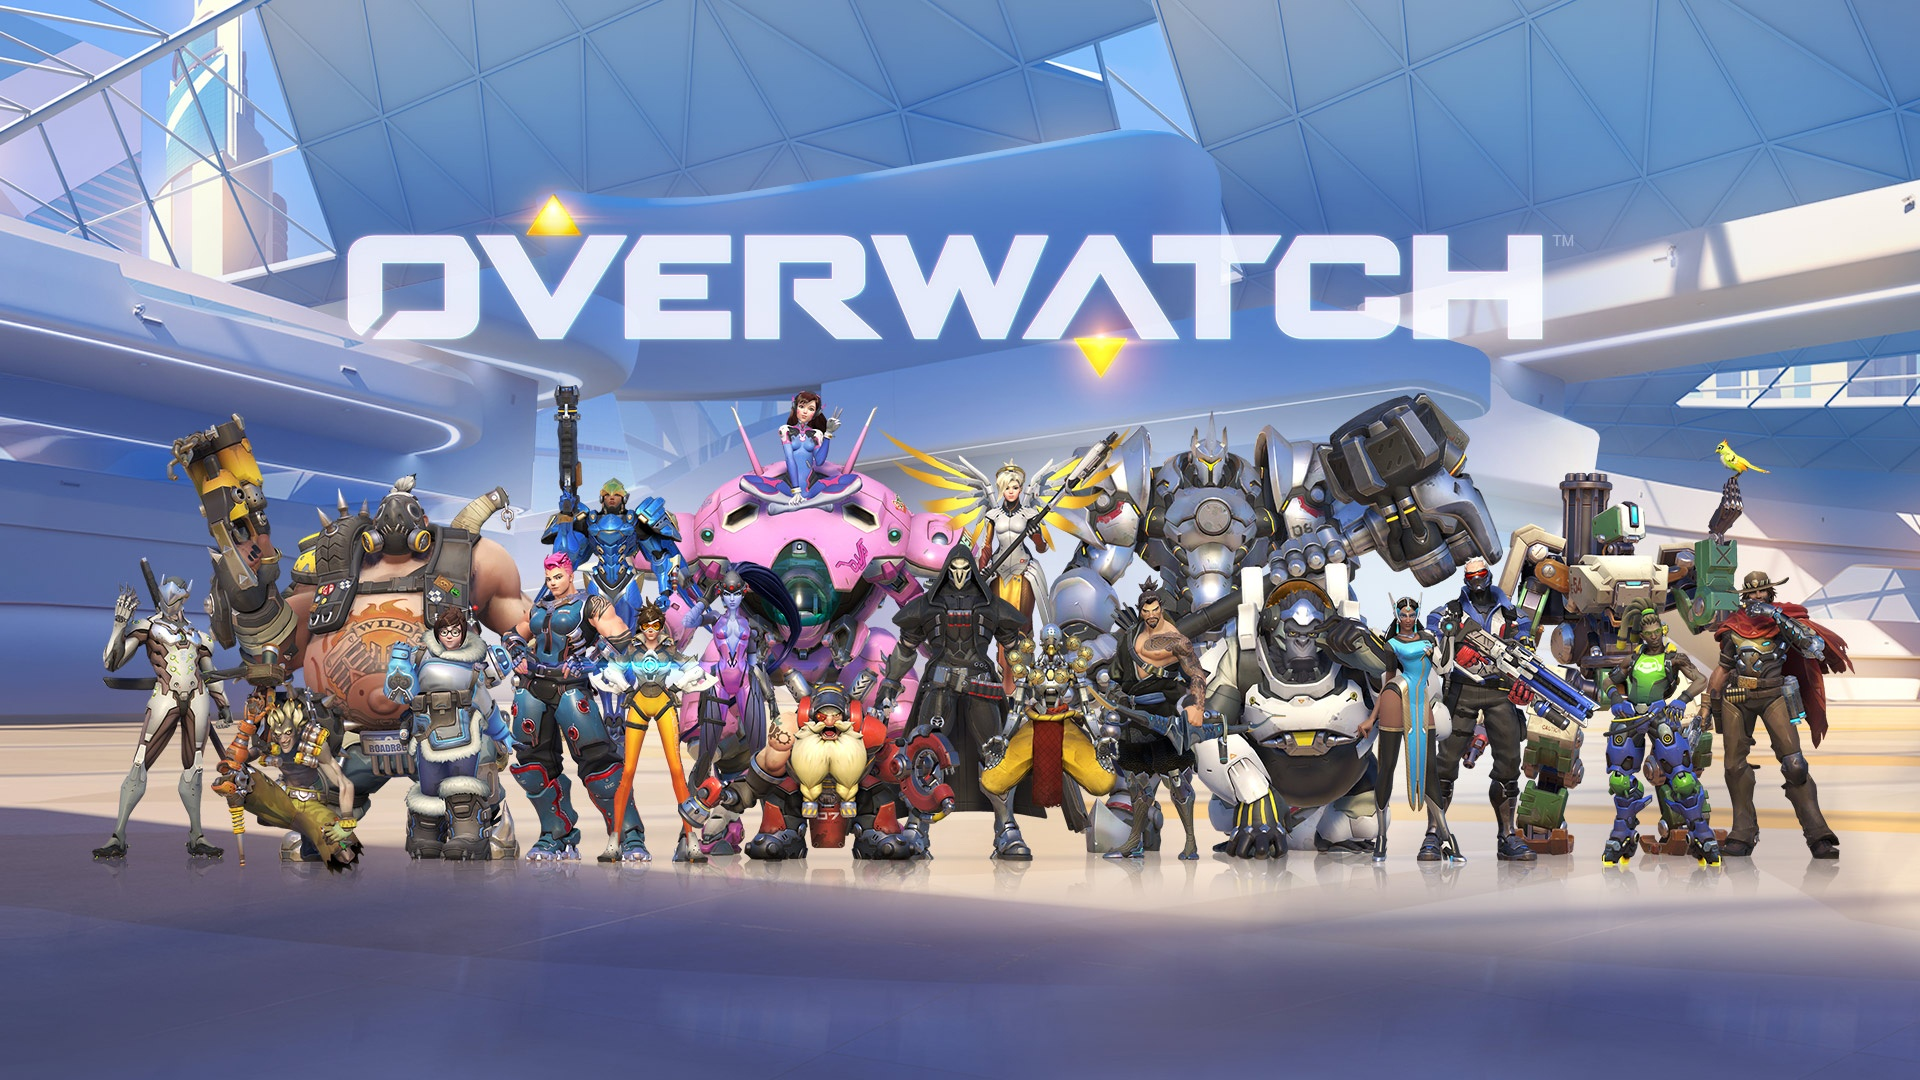 Overwatch Wallpapers Top Free Overwatch Backgrounds